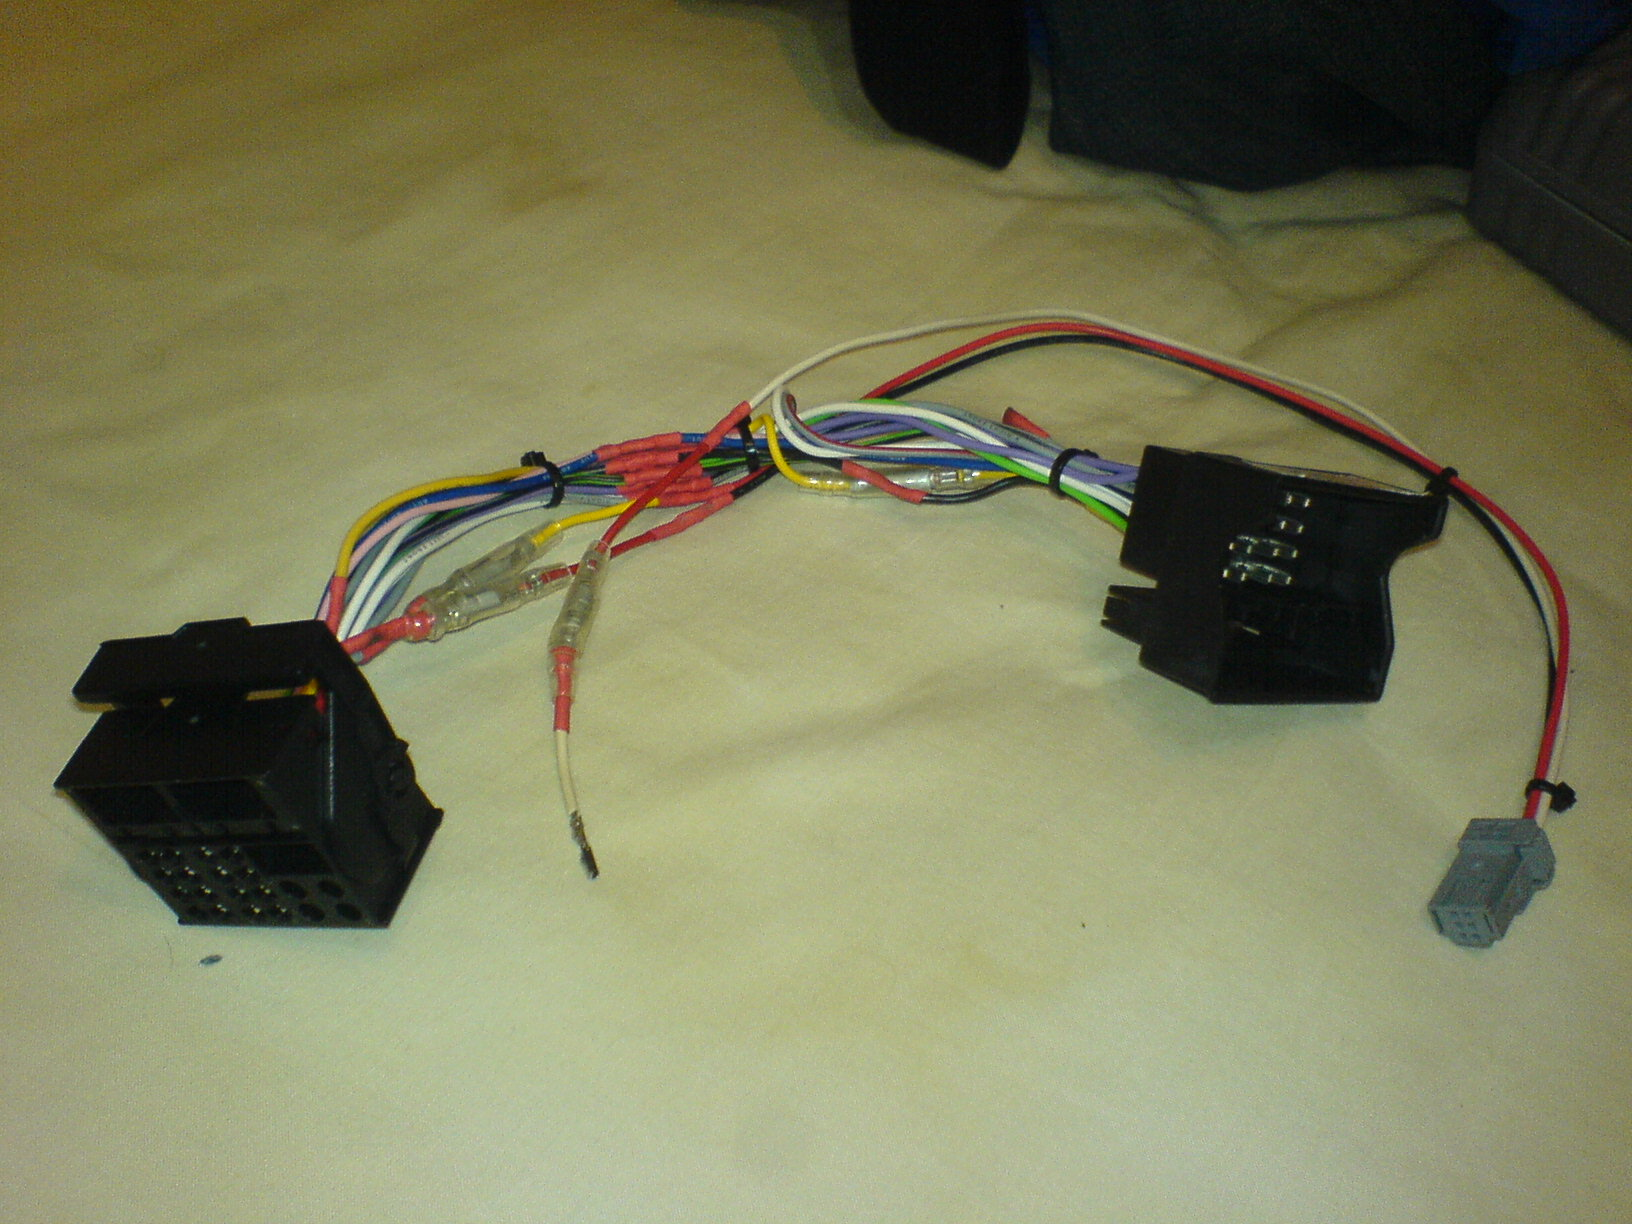 Pinouts Rt4 Wiki Citroen Rd4 Wiring Diagram Adapter To Install In A C4 Made From Parrot